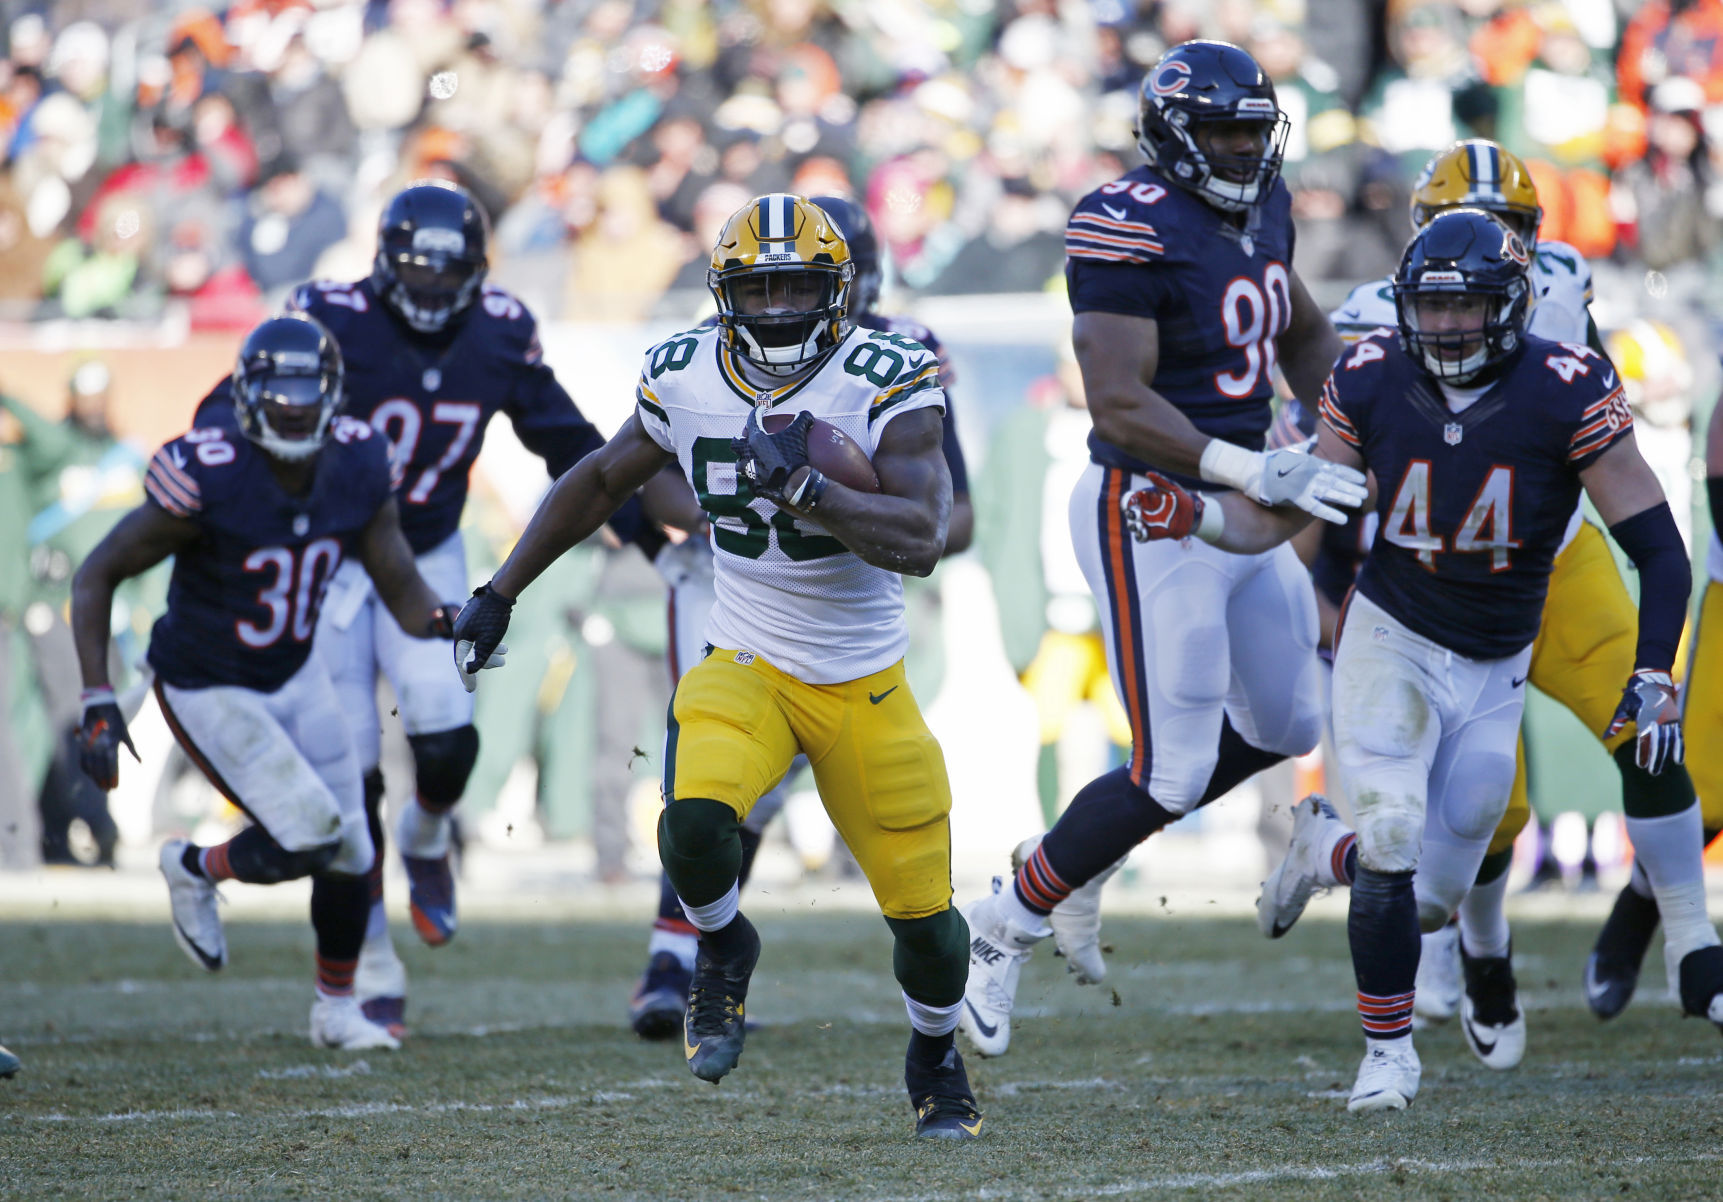 Geronimo Allison suspended for first game of regular season